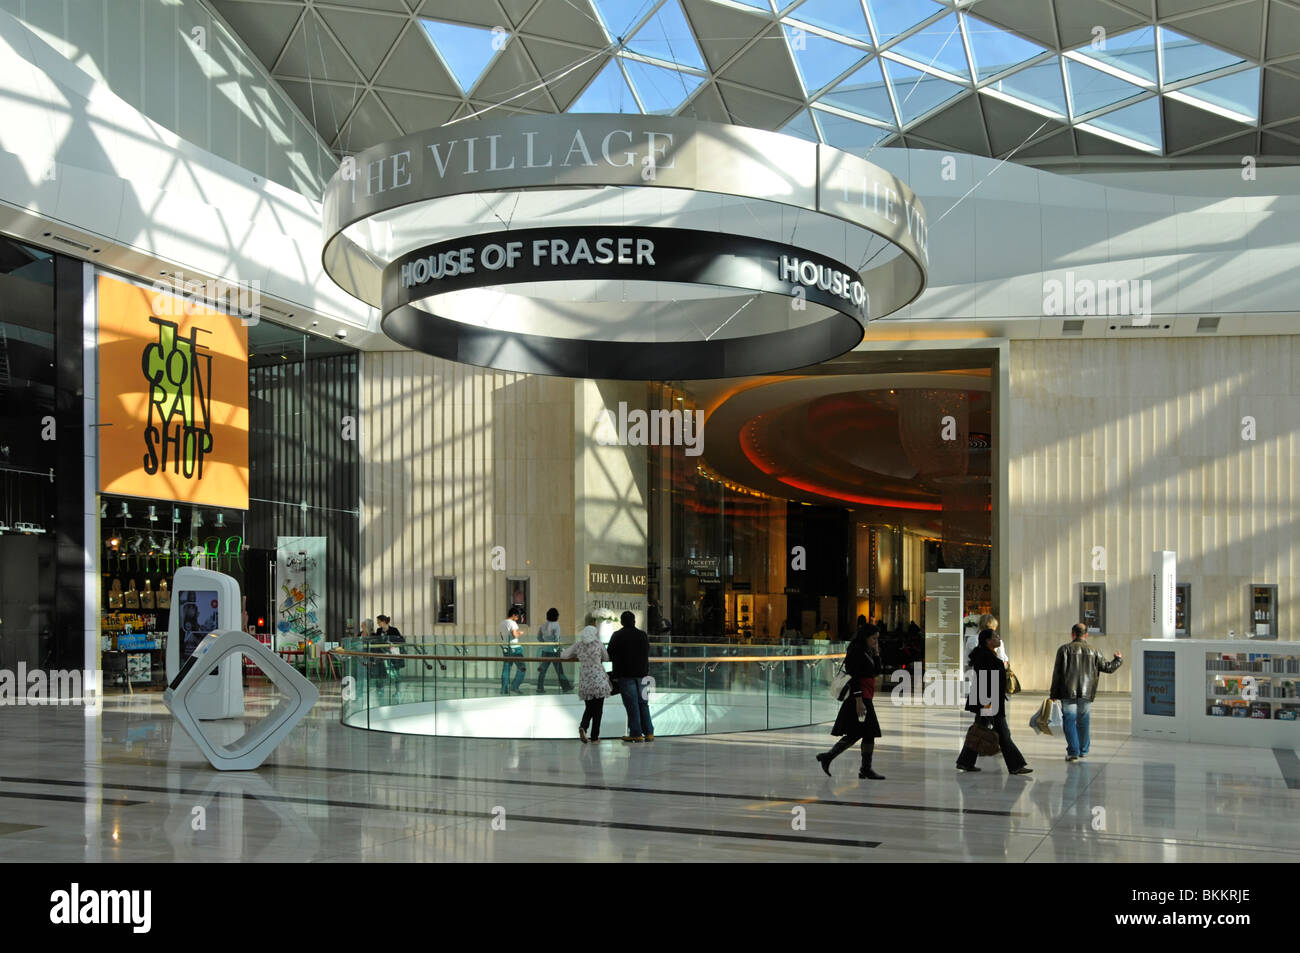 House of Fraser store entrance in Westfield shopping mall - Stock Image